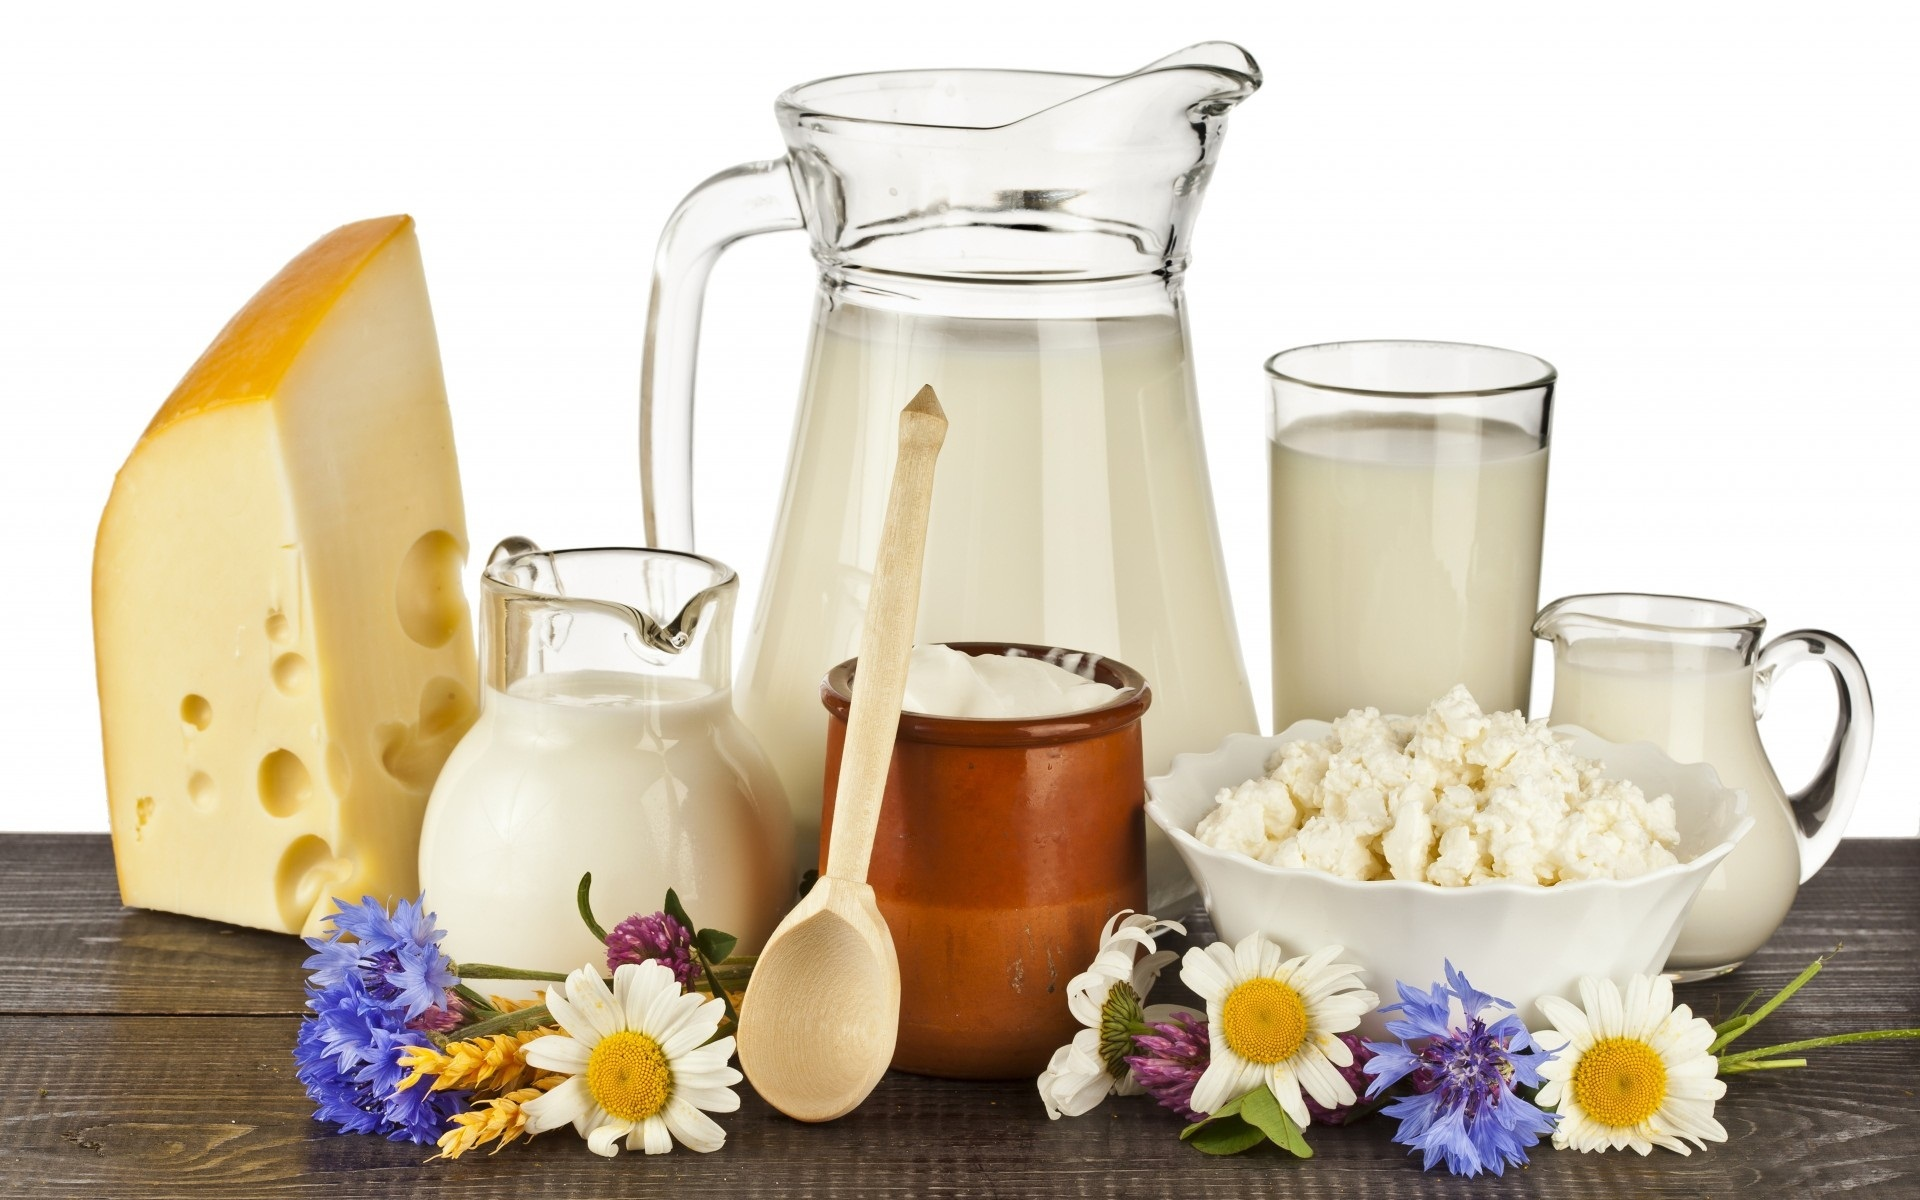 a study of the effects of milk and dairy intake on the development of dementia on japanese people